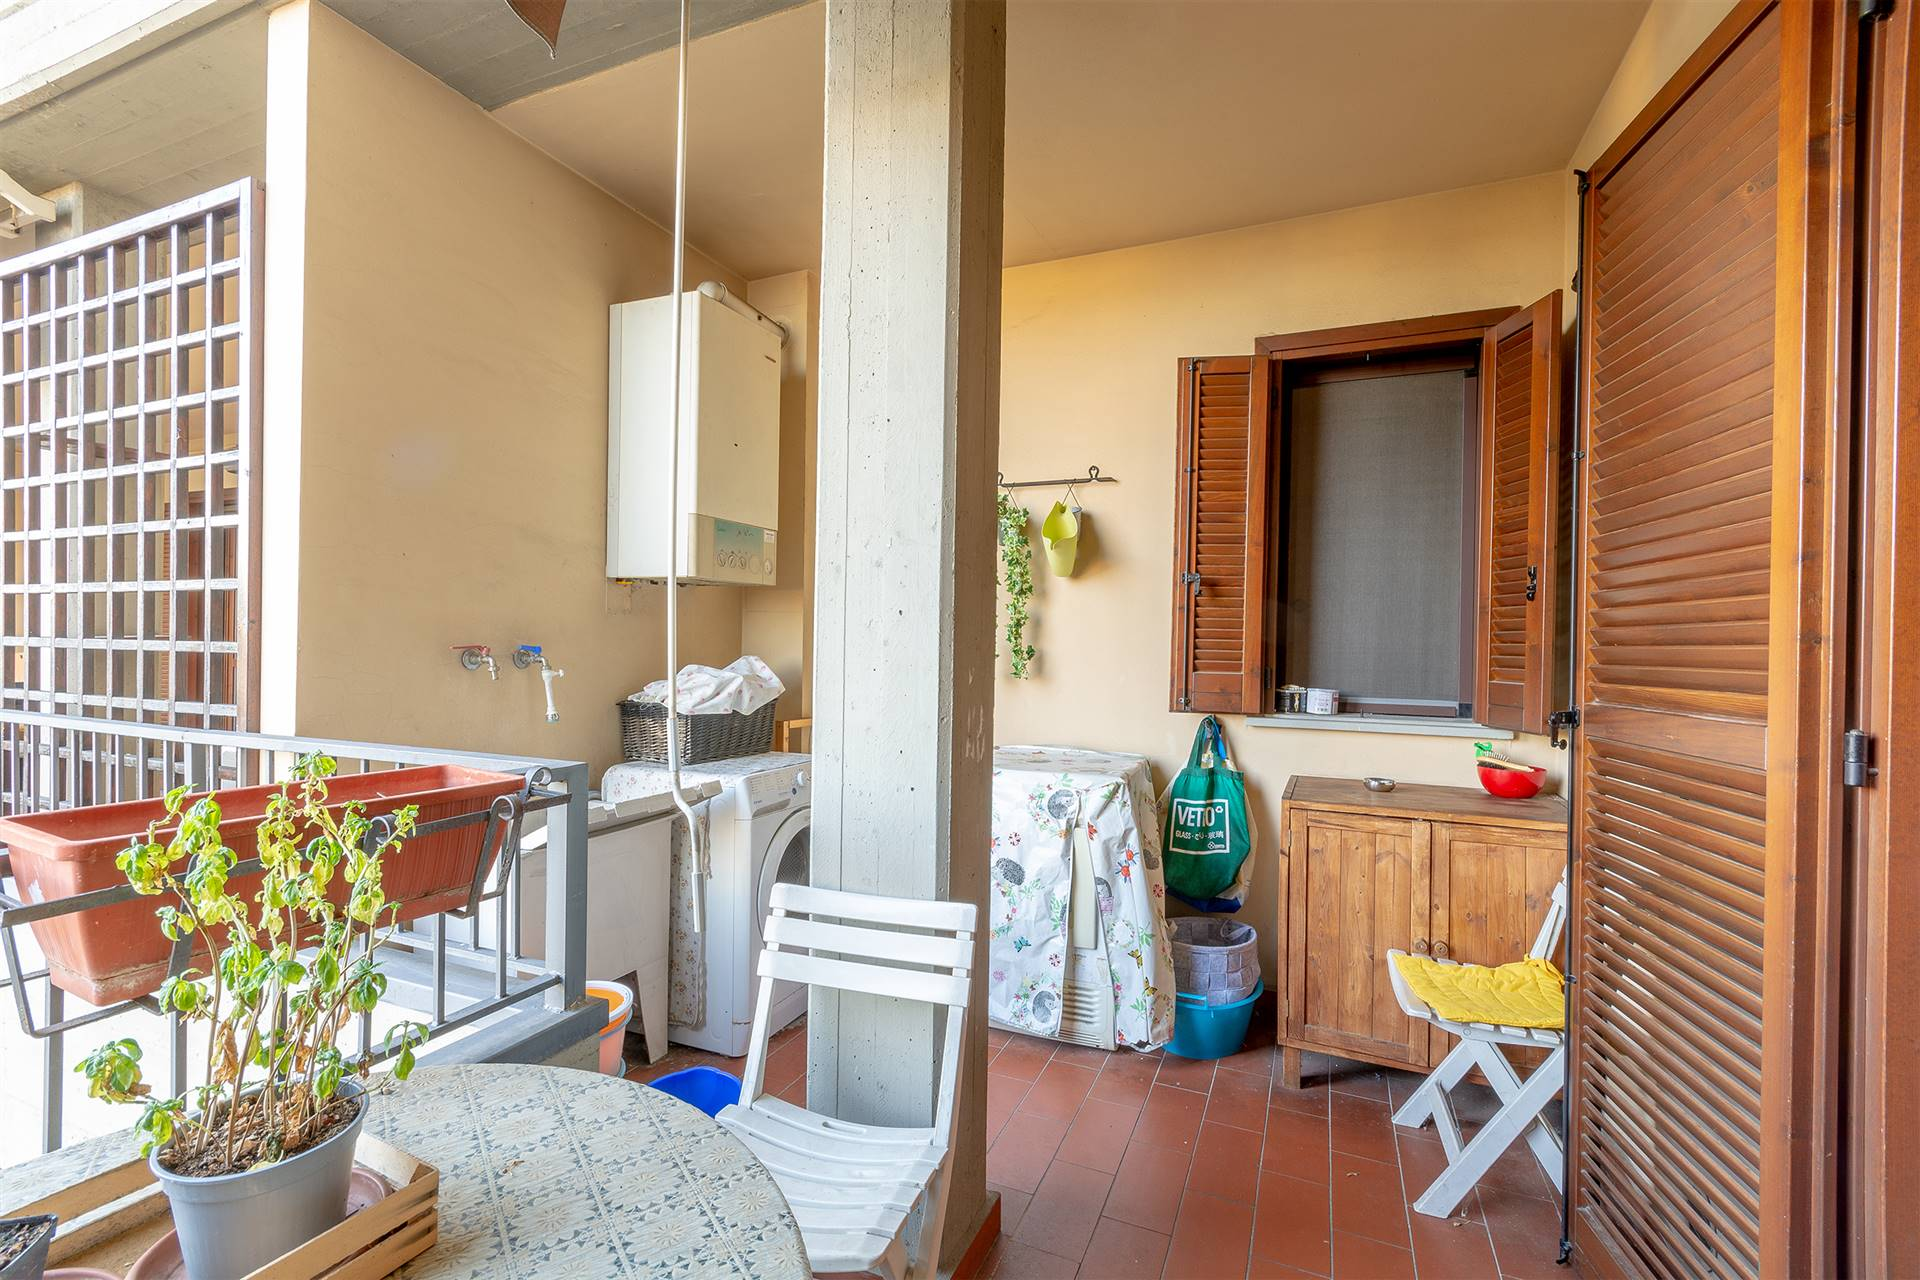 PAPERINO, PRATO, Apartment for sale, Good condition, Heating Individual heating system, Energetic class: G, placed at 1° on 2, composed by: 3 Rooms,